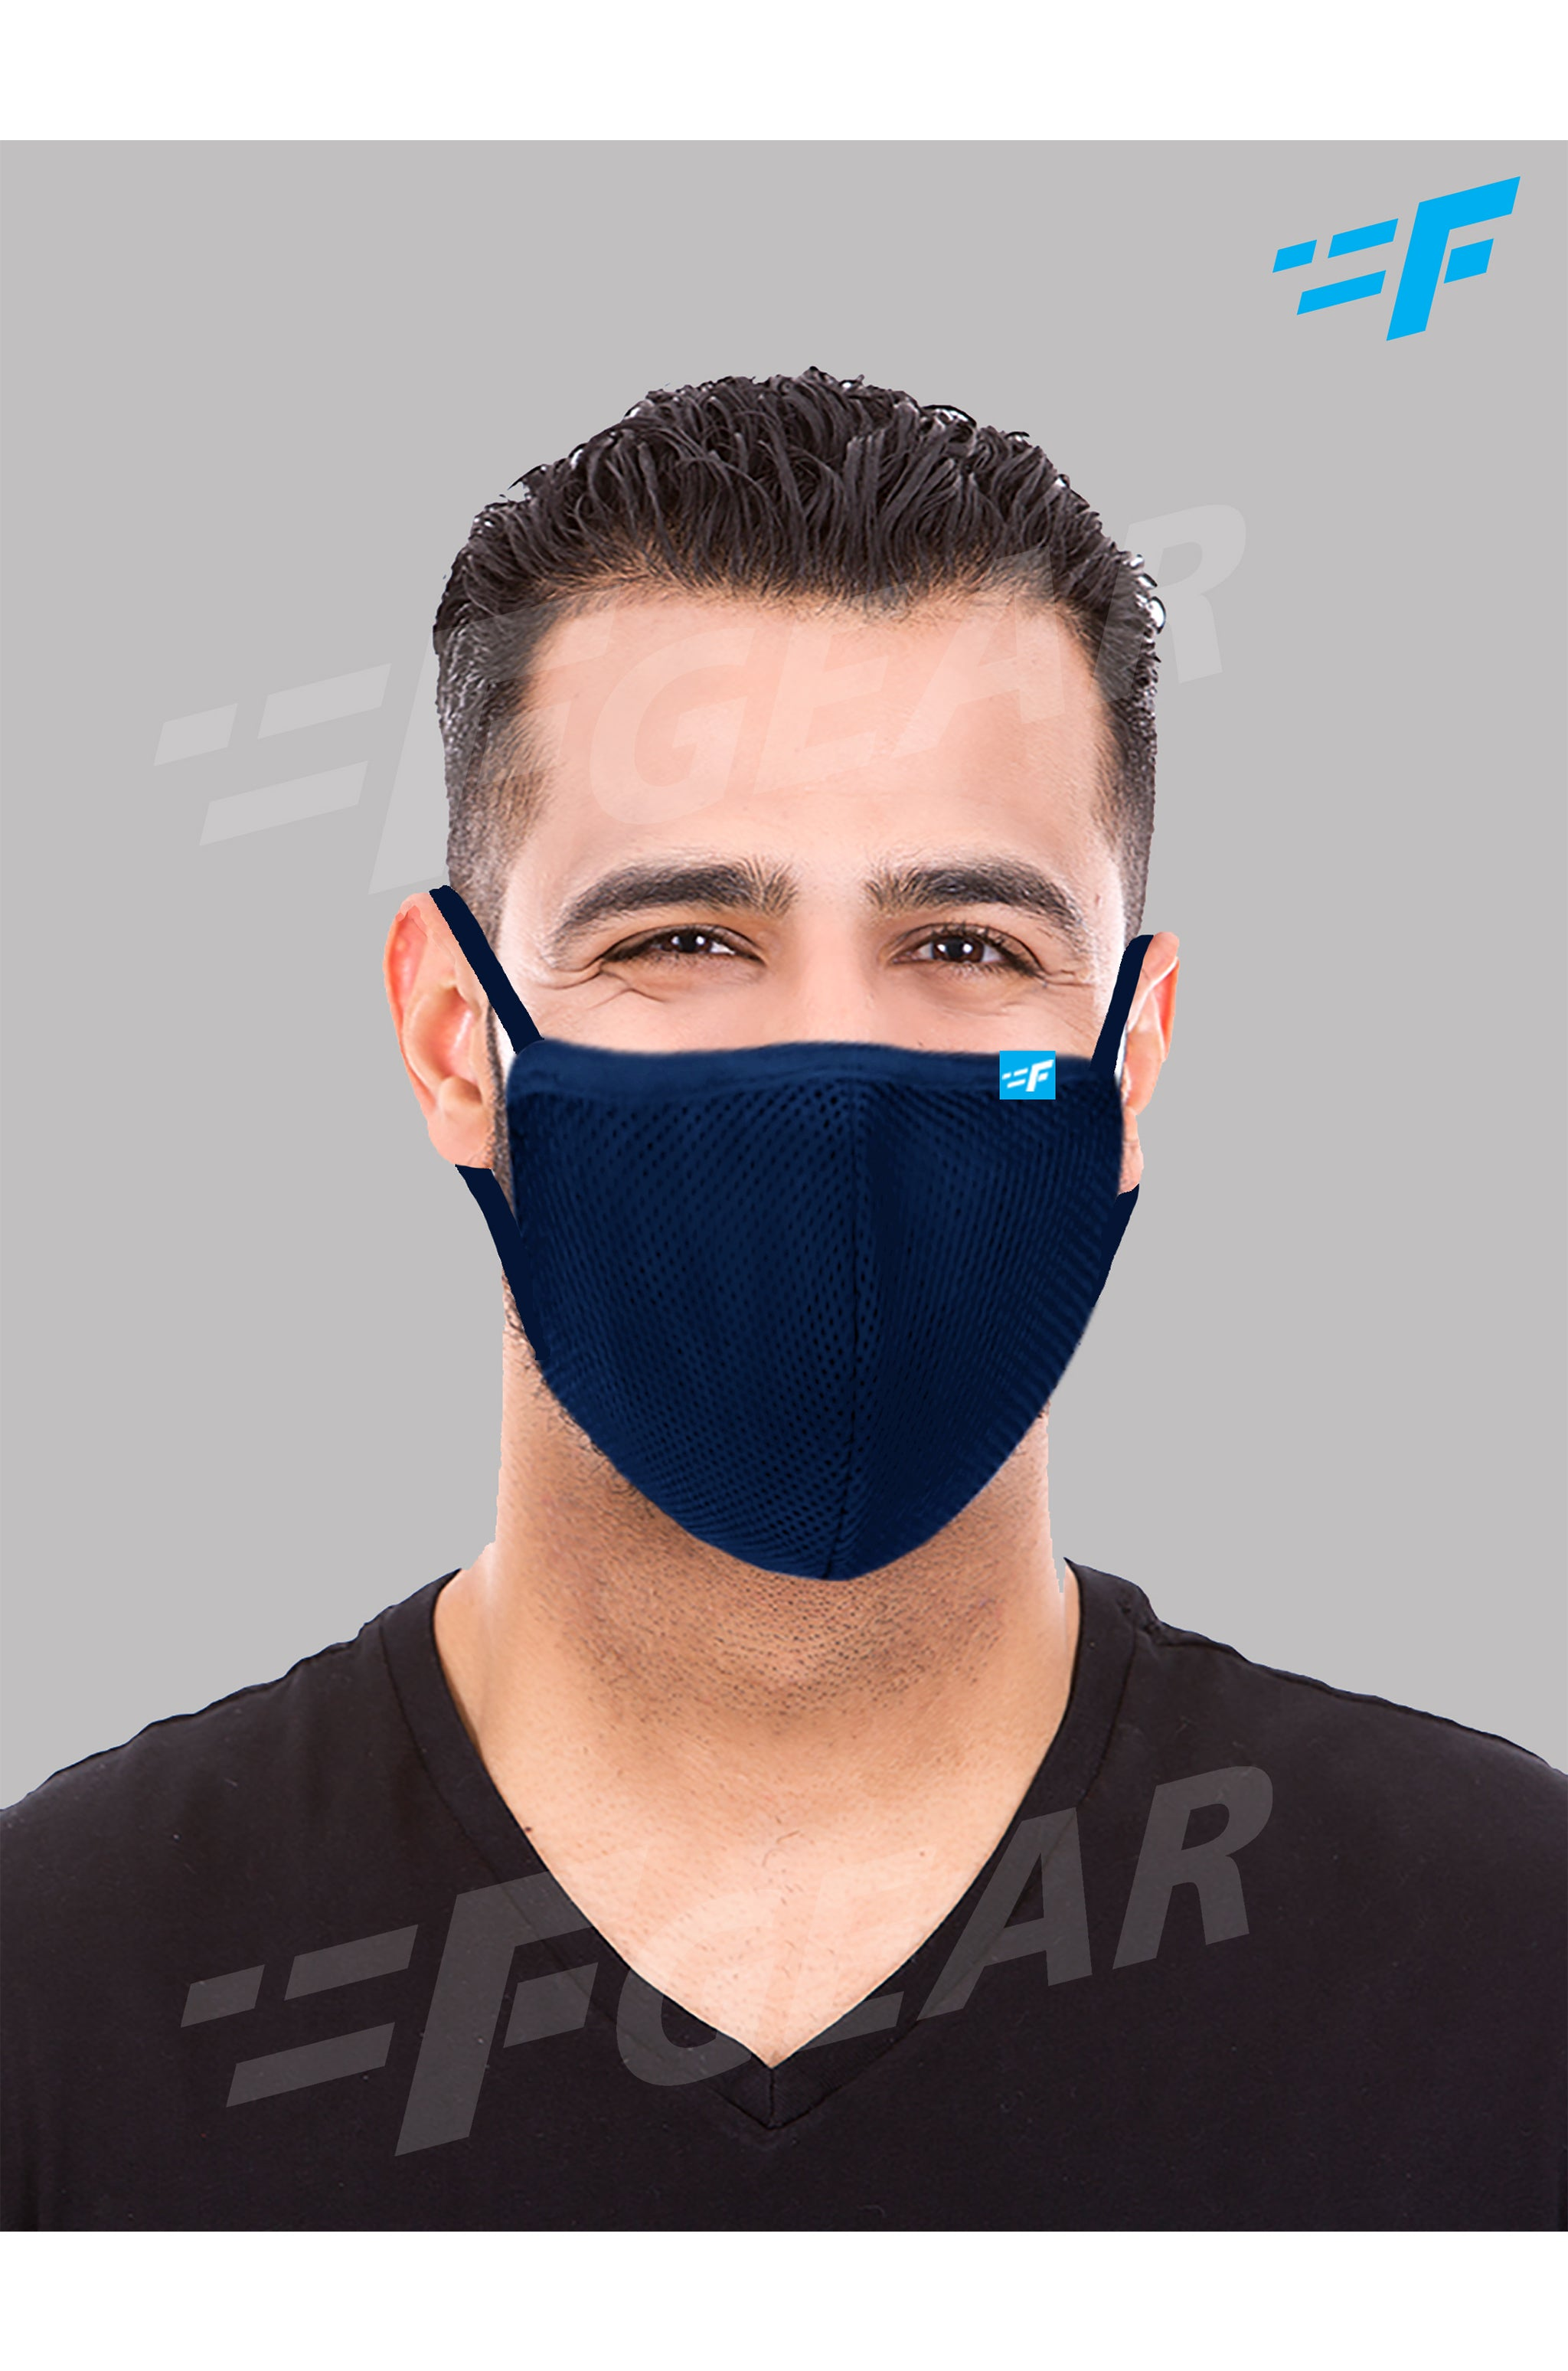 7layer F95 CE ISO SITRA Lab tested >95% BFE reusable washable Safeguard mask Navy Blue color Pack of 1